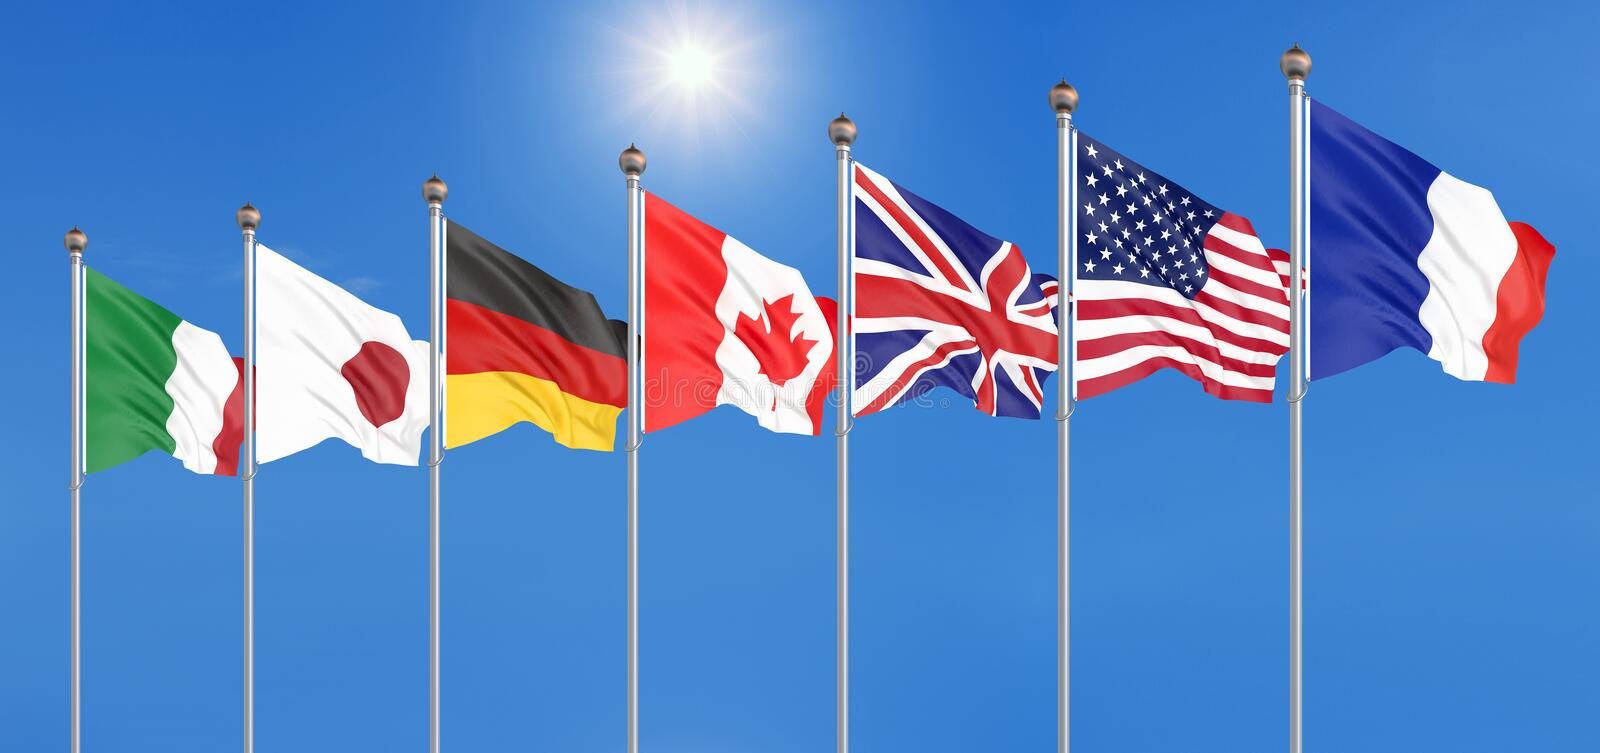 Silk waving G7 flags of countries of Group of Seven Canada, Germany, Italy, France, Japan, USA states, United Kingdom. Blue sky. Background. Big G7 in France vector illustration